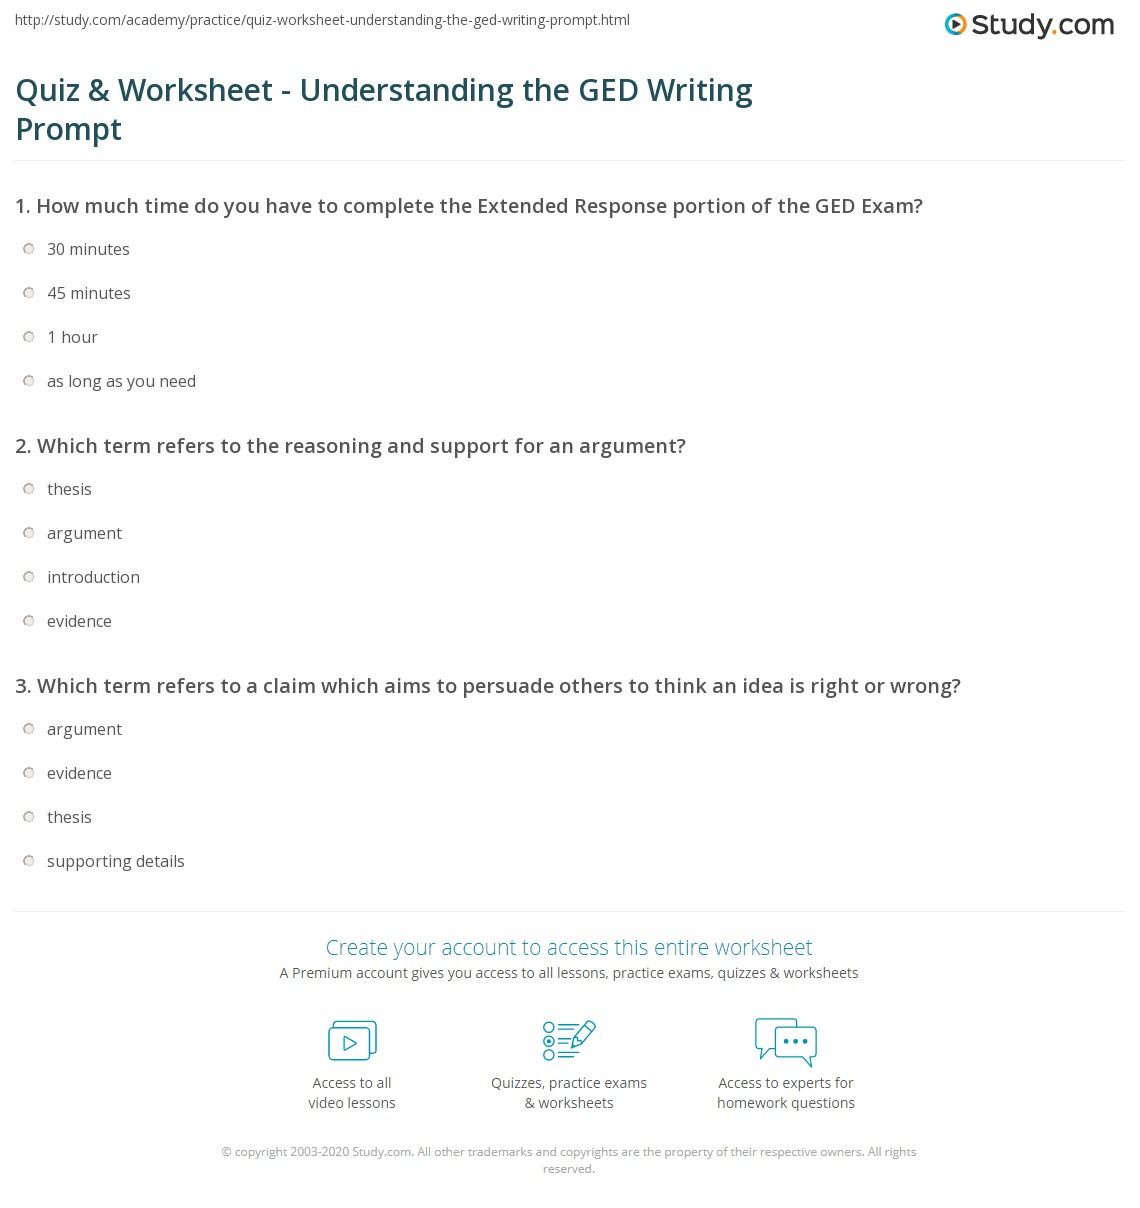 Quiz & Worksheet Understanding the GED Writing Prompt